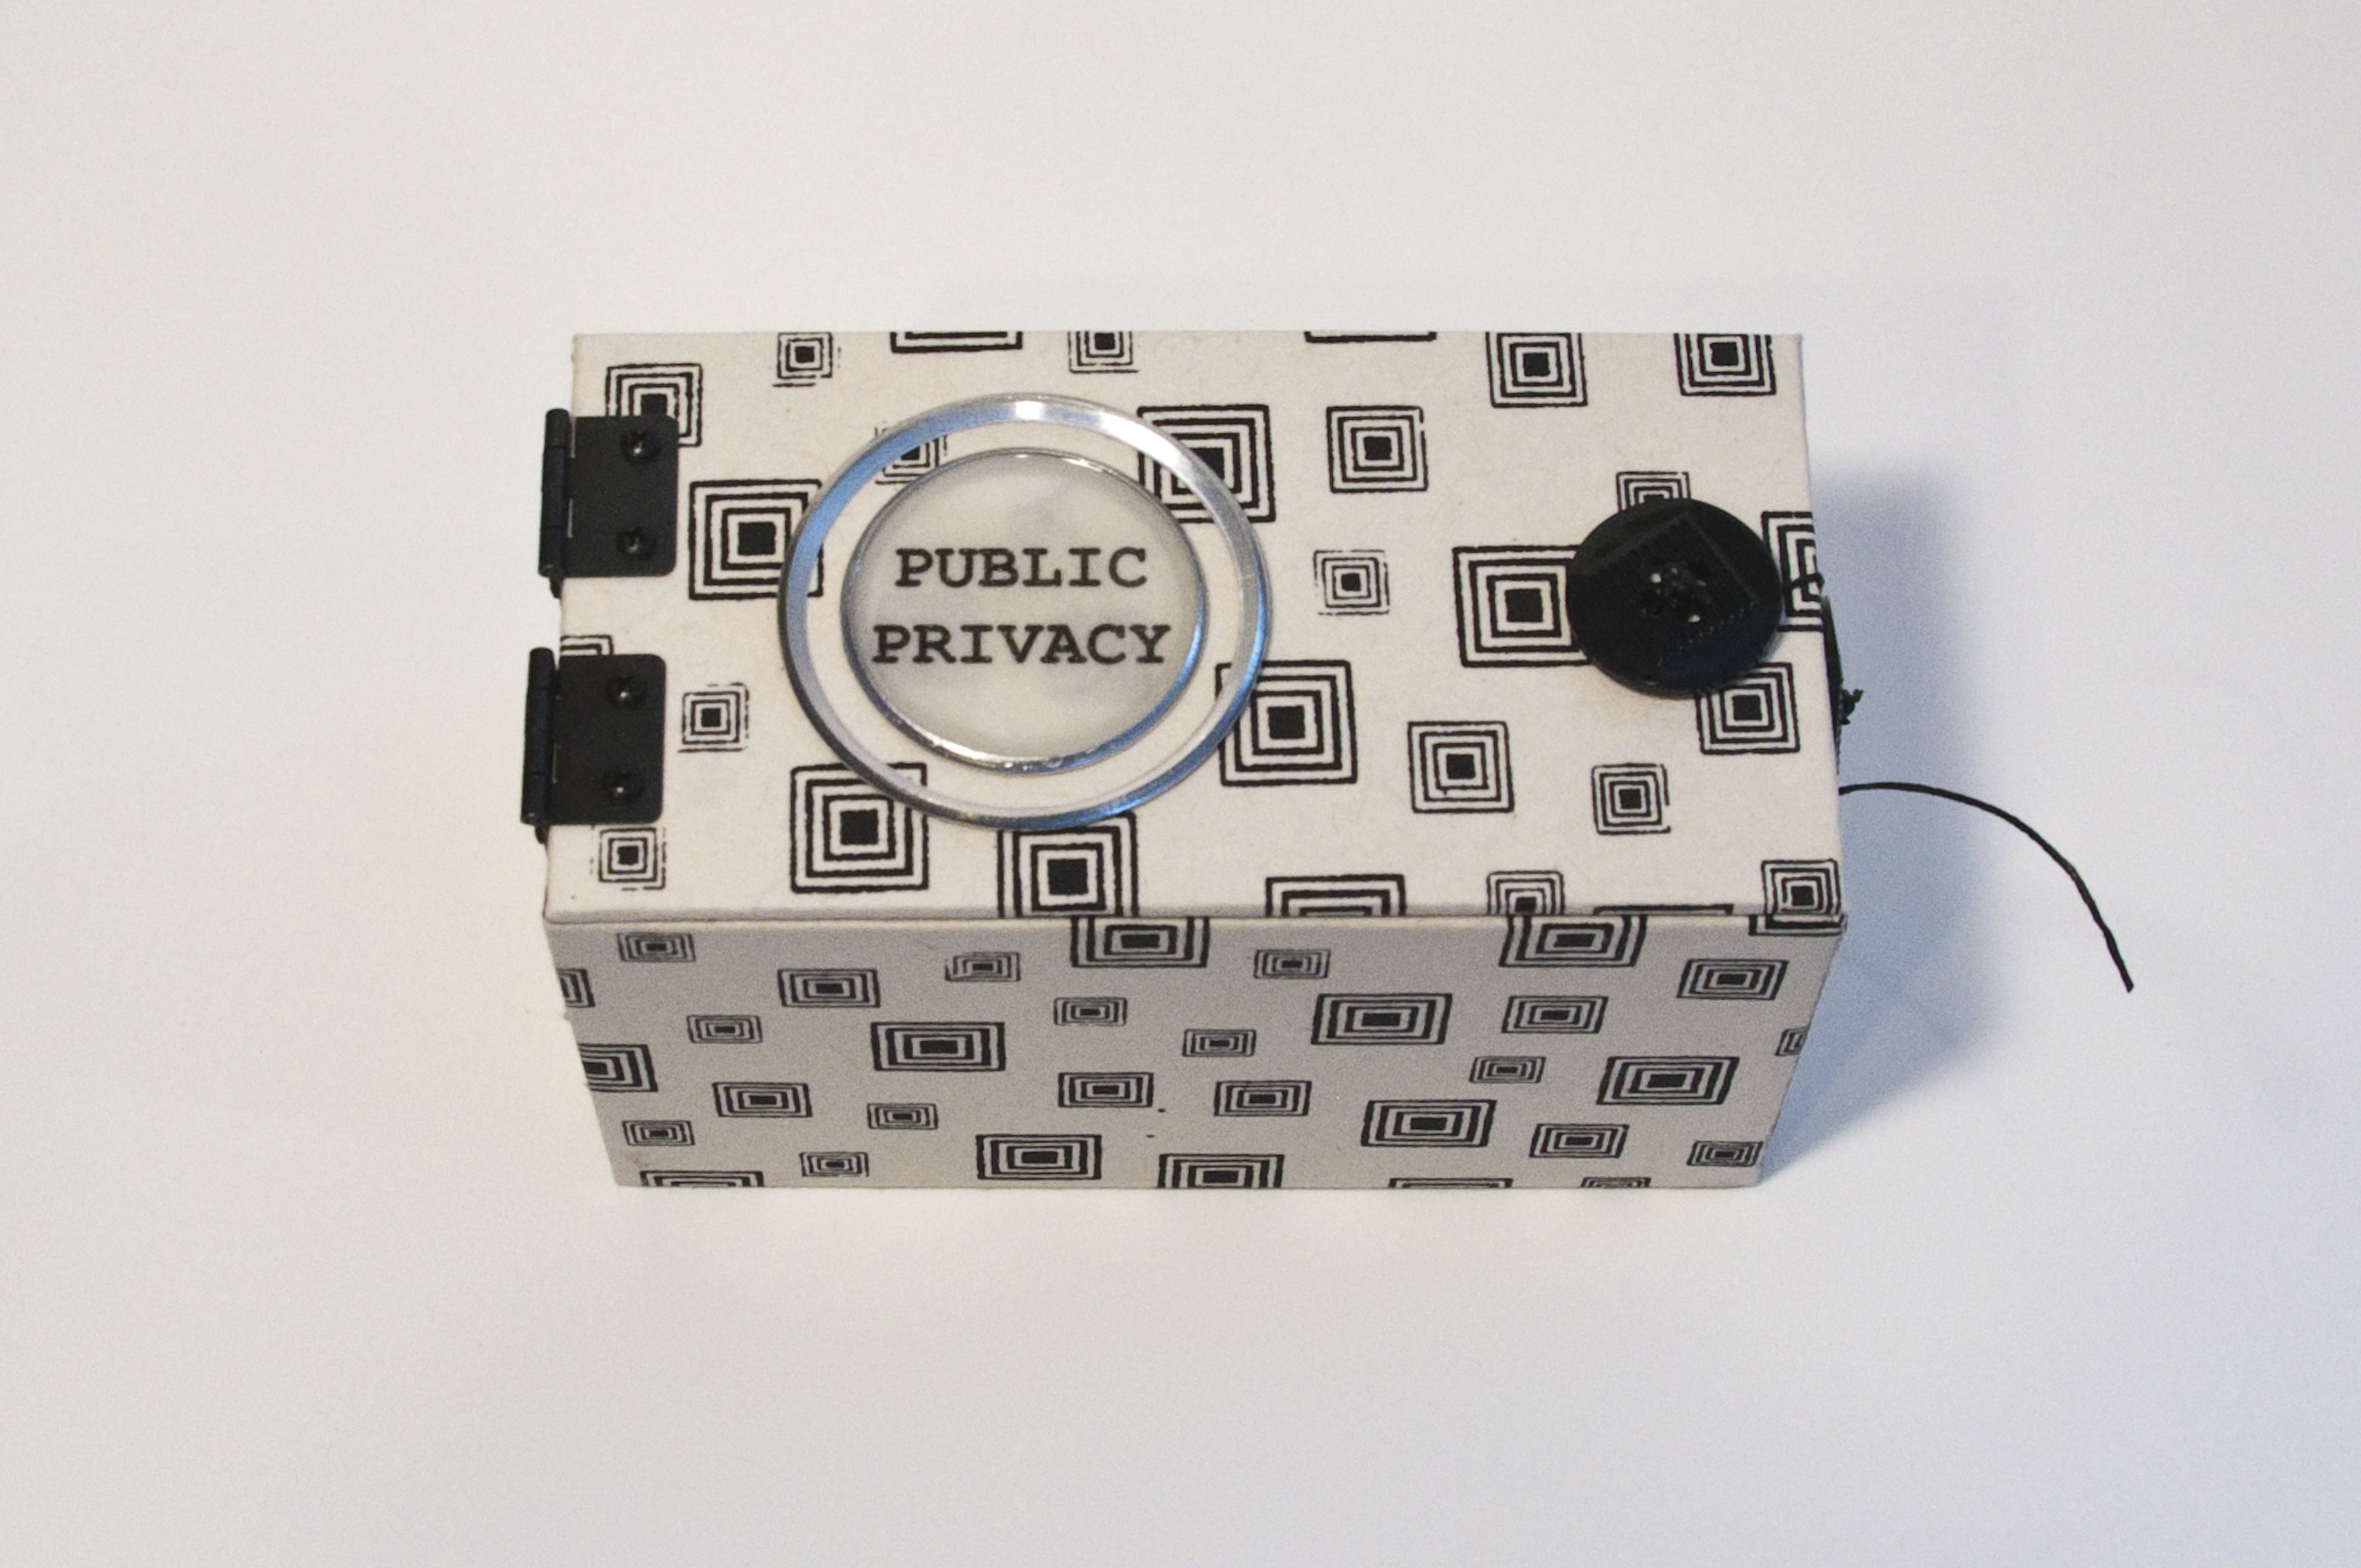 Public Privacy - Ginger Burrell